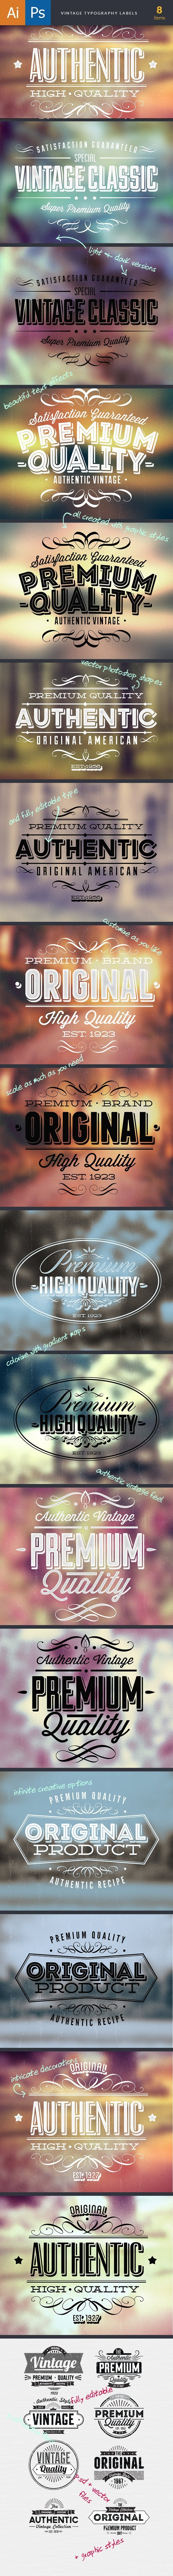 TypeZilla 3: The Super Premium Vintage Typography Set 12